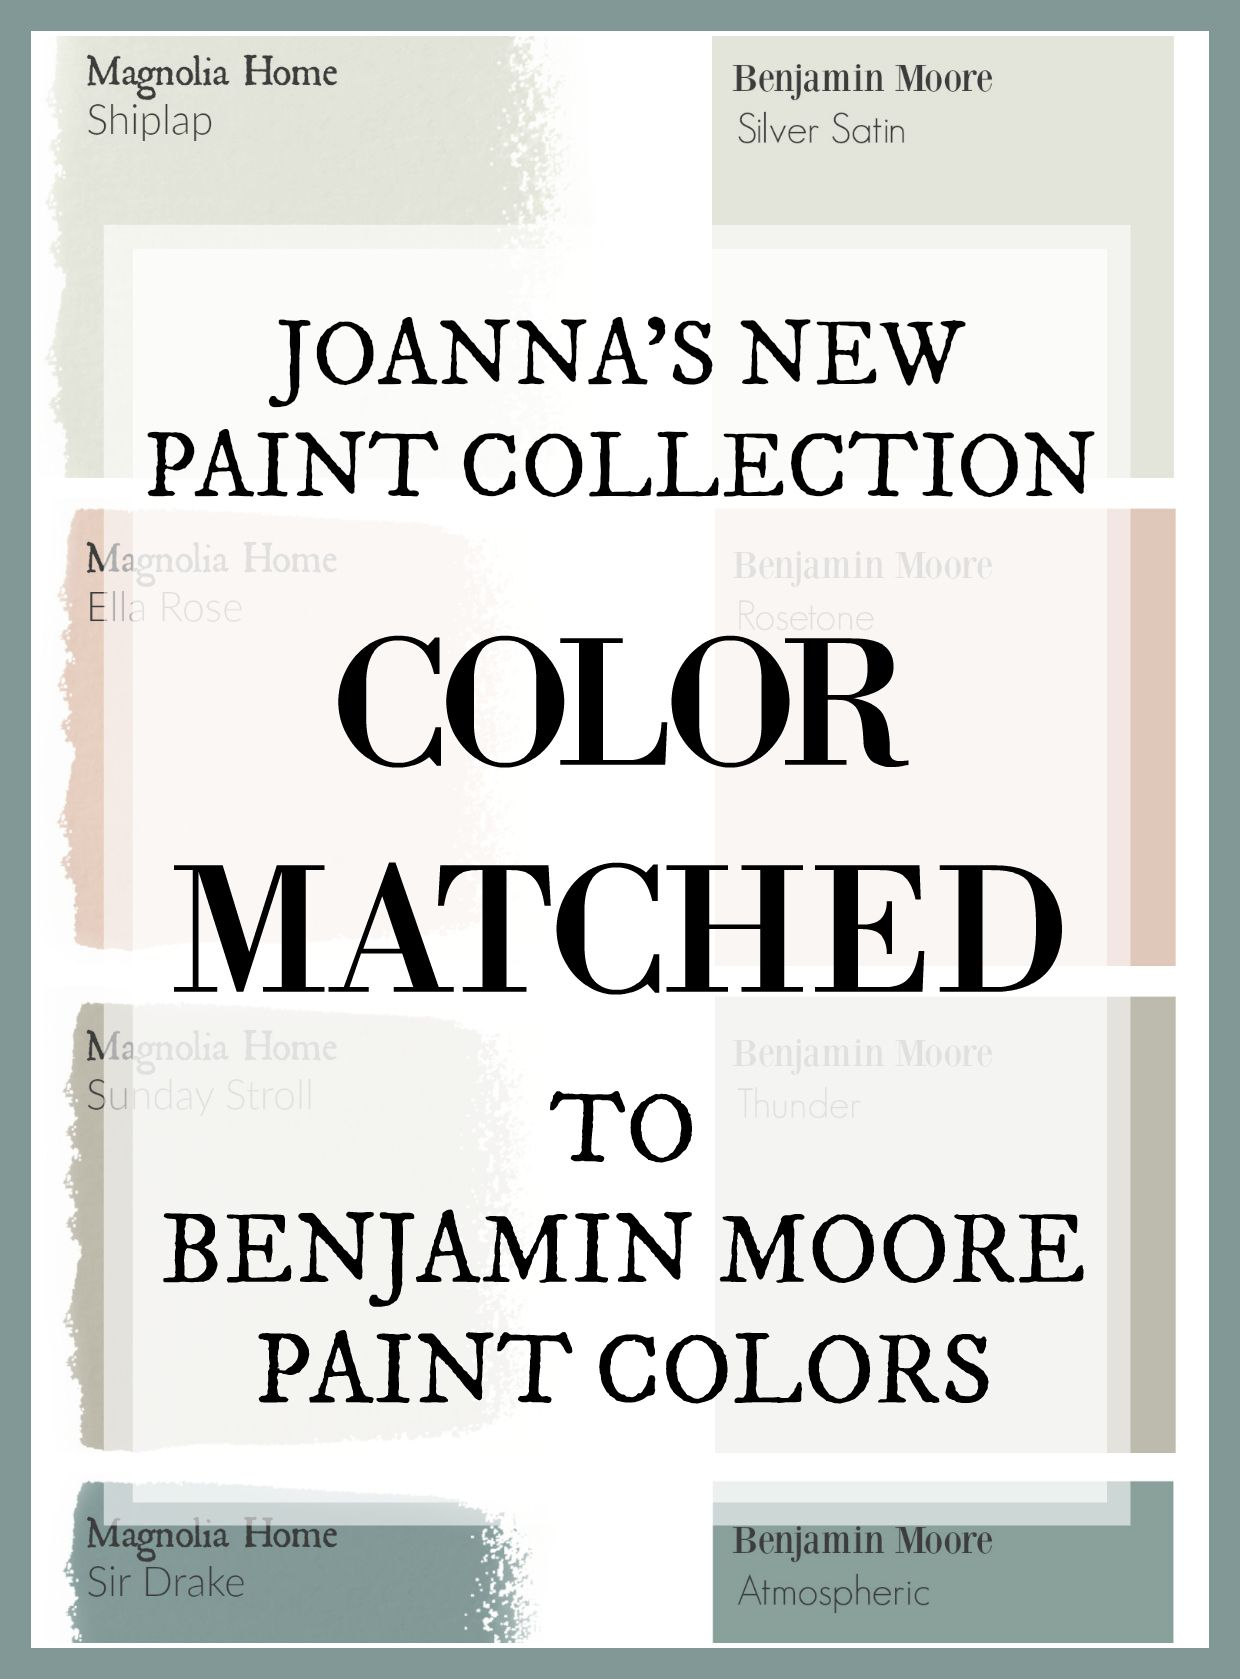 Fixer Upper Paint Colors: Magnolia Home Paint Color Matched to Benjamin Moore - The Weathered Fox